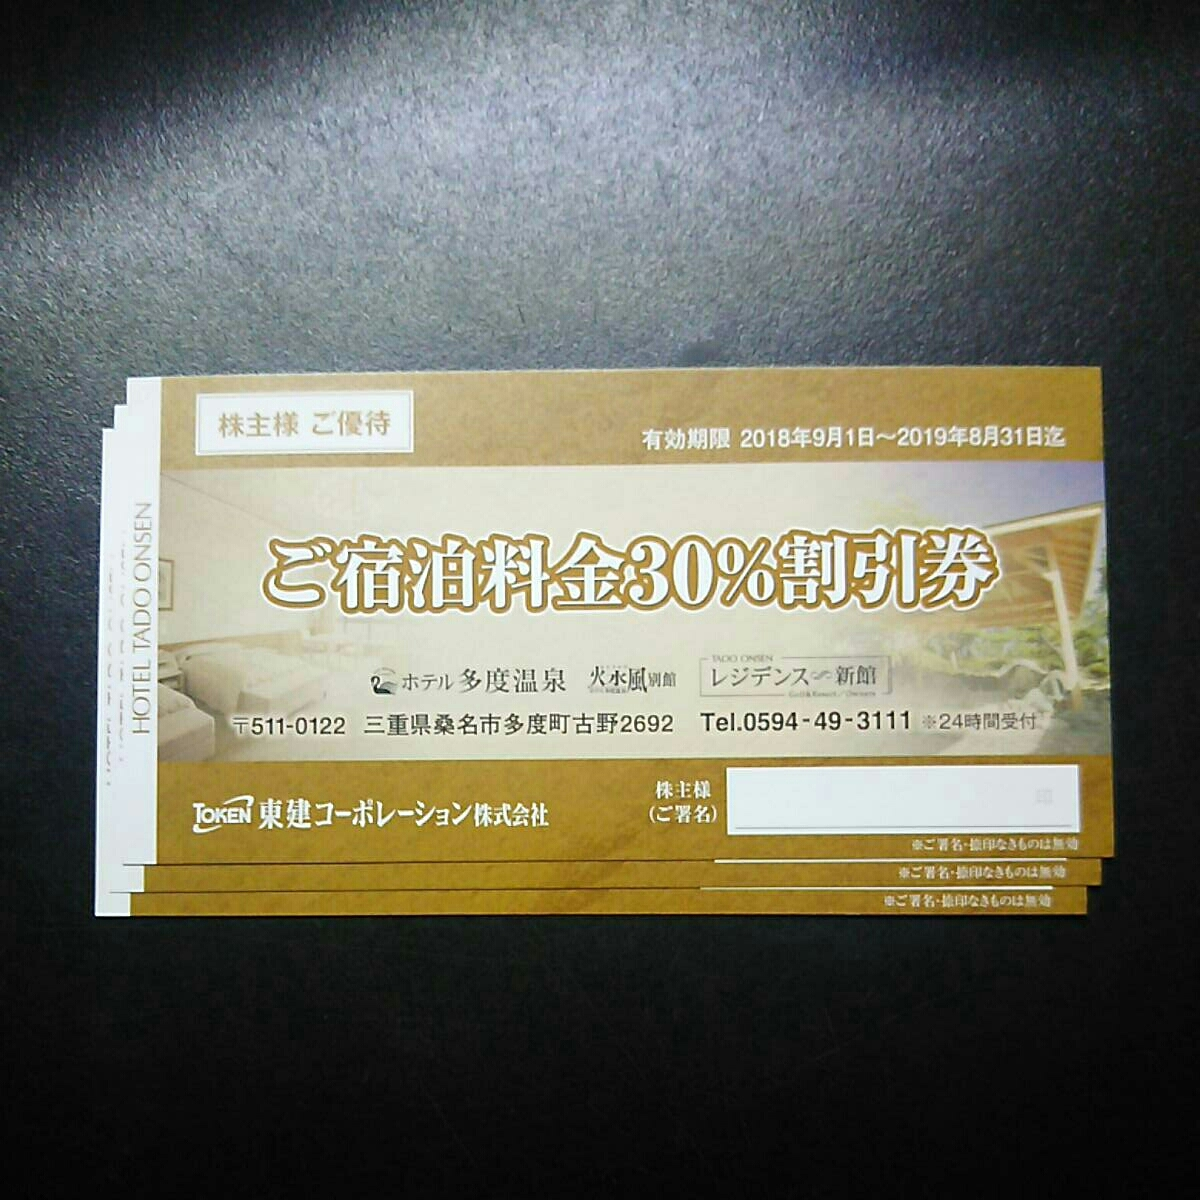 postage 62 jpy ] hotel many times hot spring 30% discount ticket 3